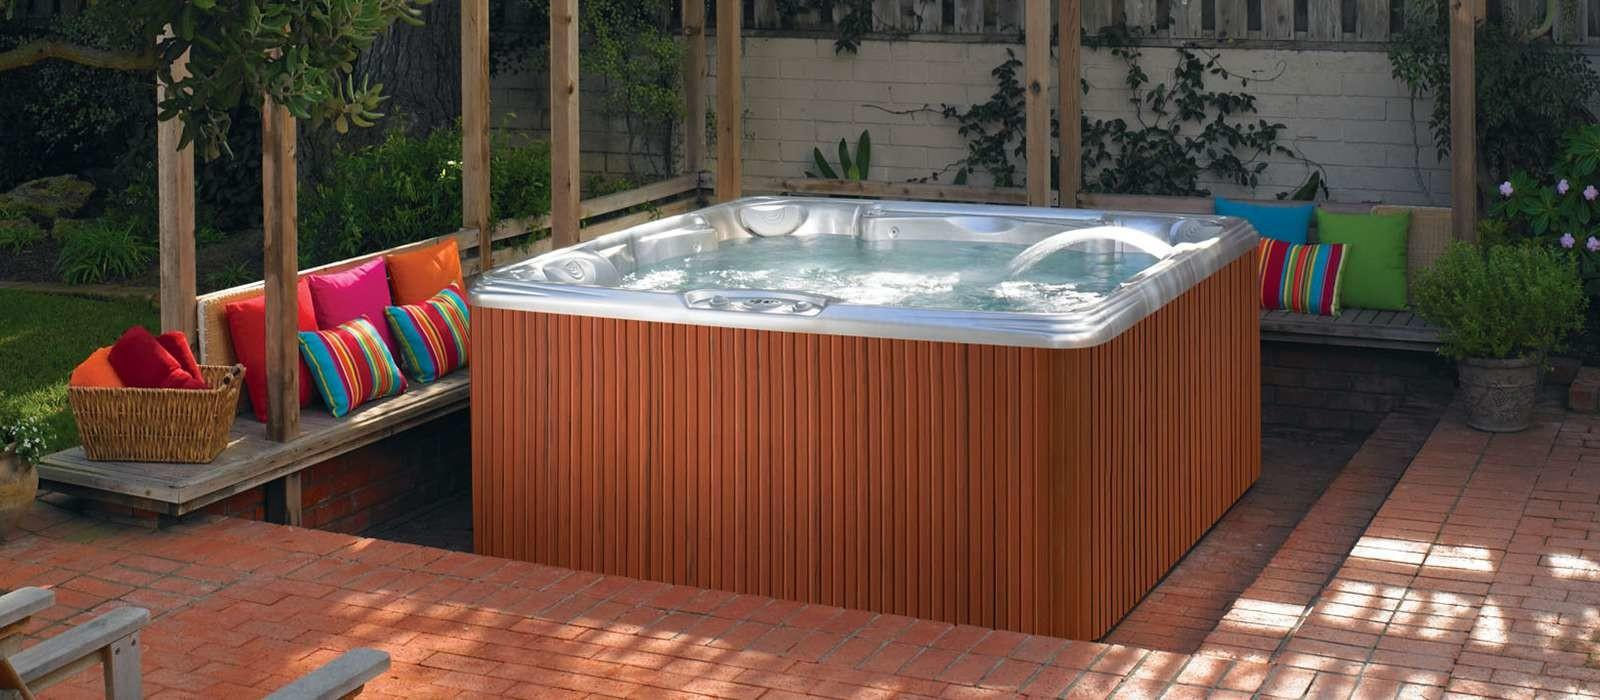 Backyard Hot Tub Ideas Installation Landscaping